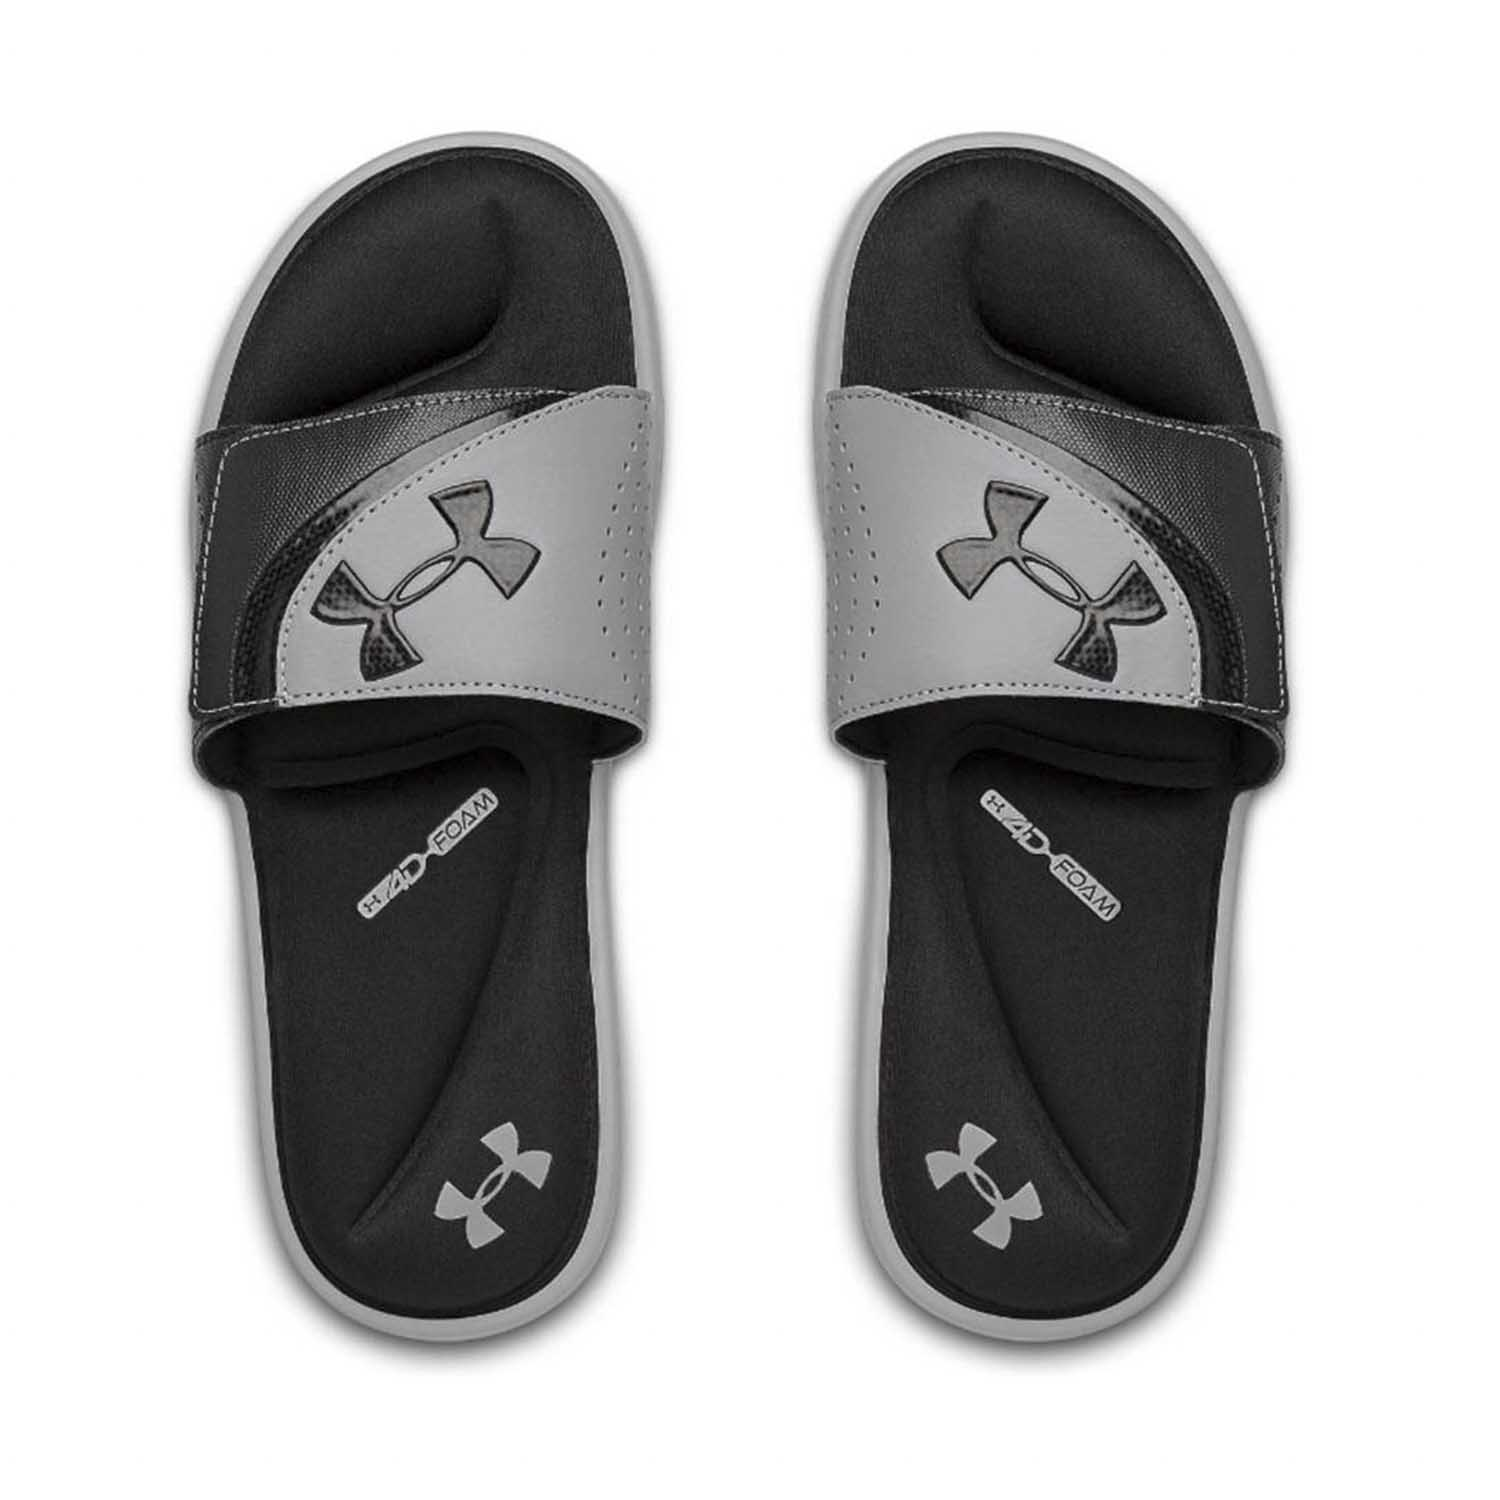 Under Amour Men's Ignite VI Slides